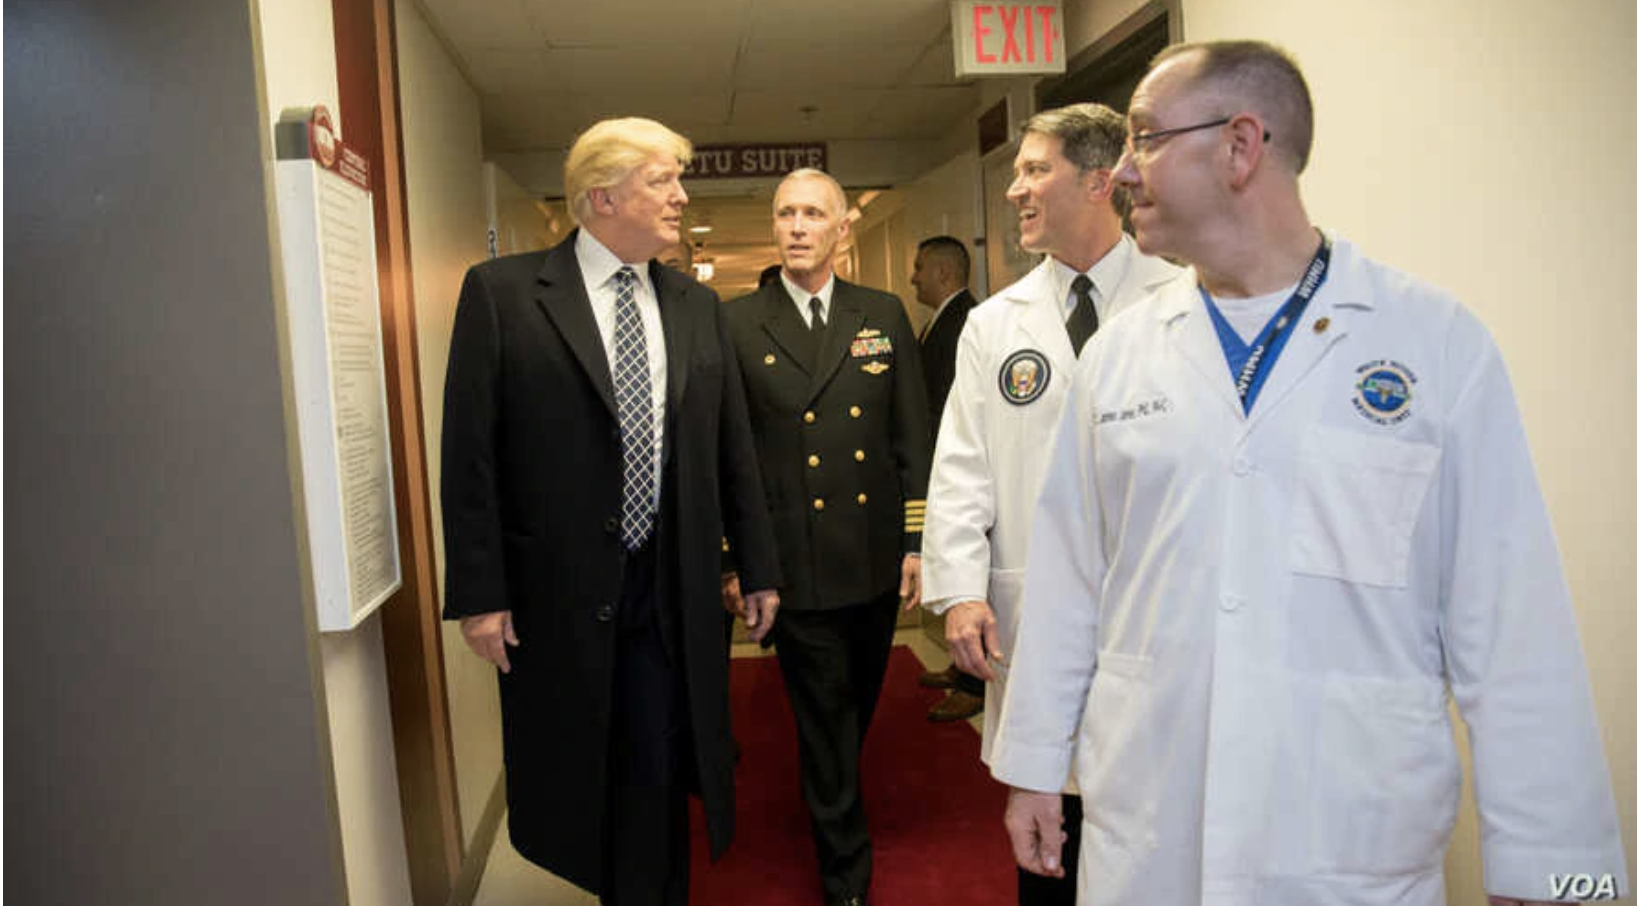 https://www.voanews.com/usa/us-politics/trumps-doctor-president-excellent-health